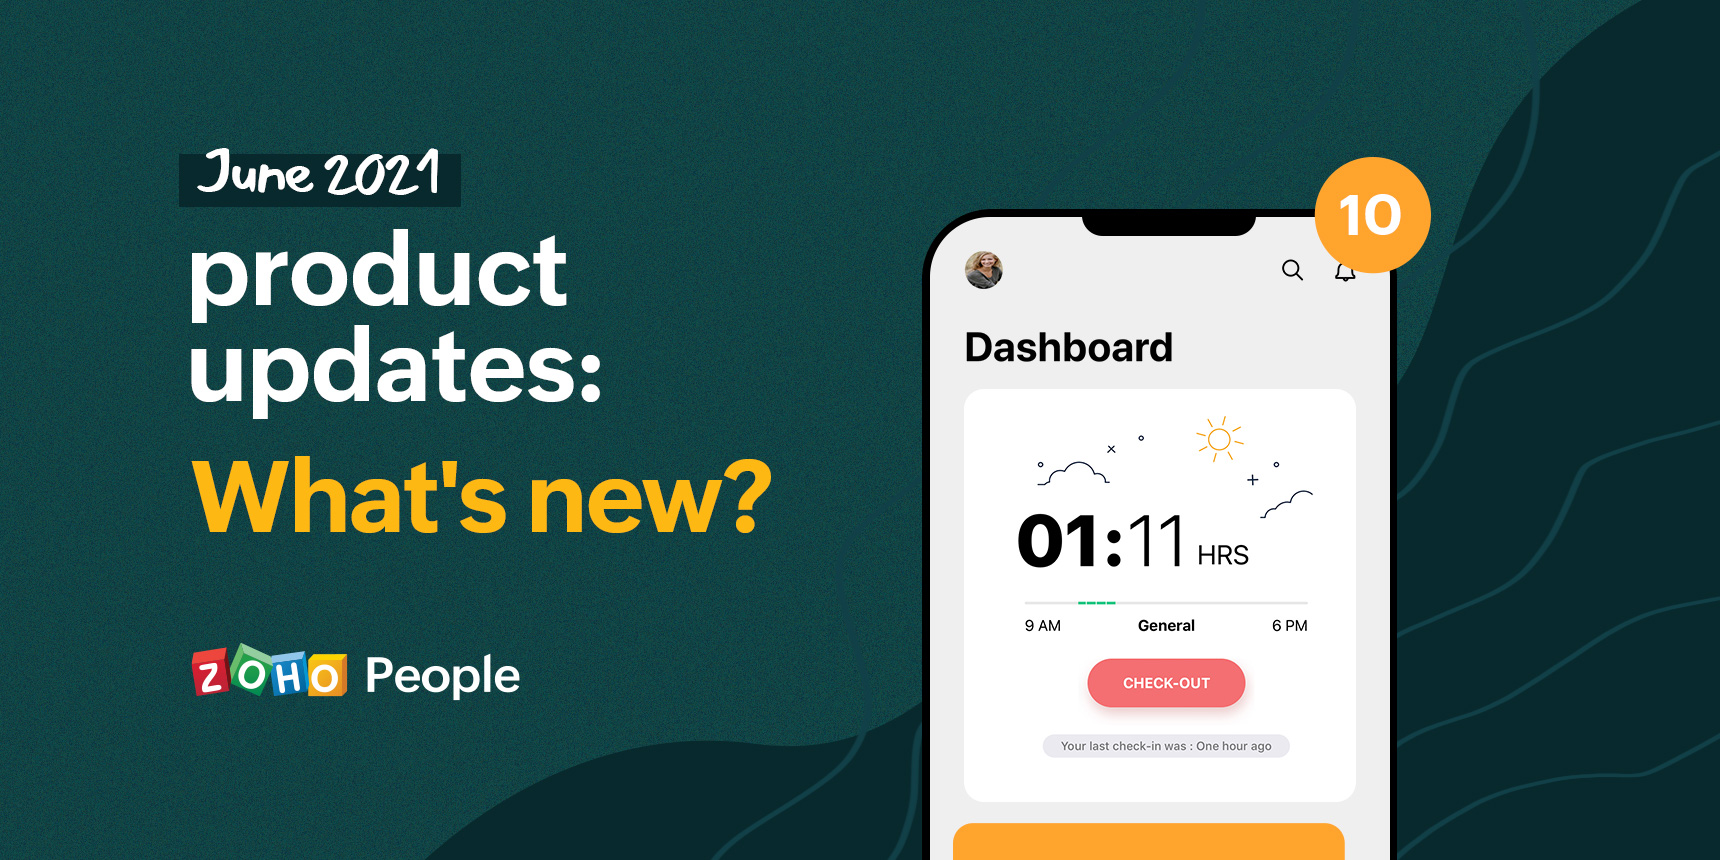 Product updates from Zoho People: June 2021